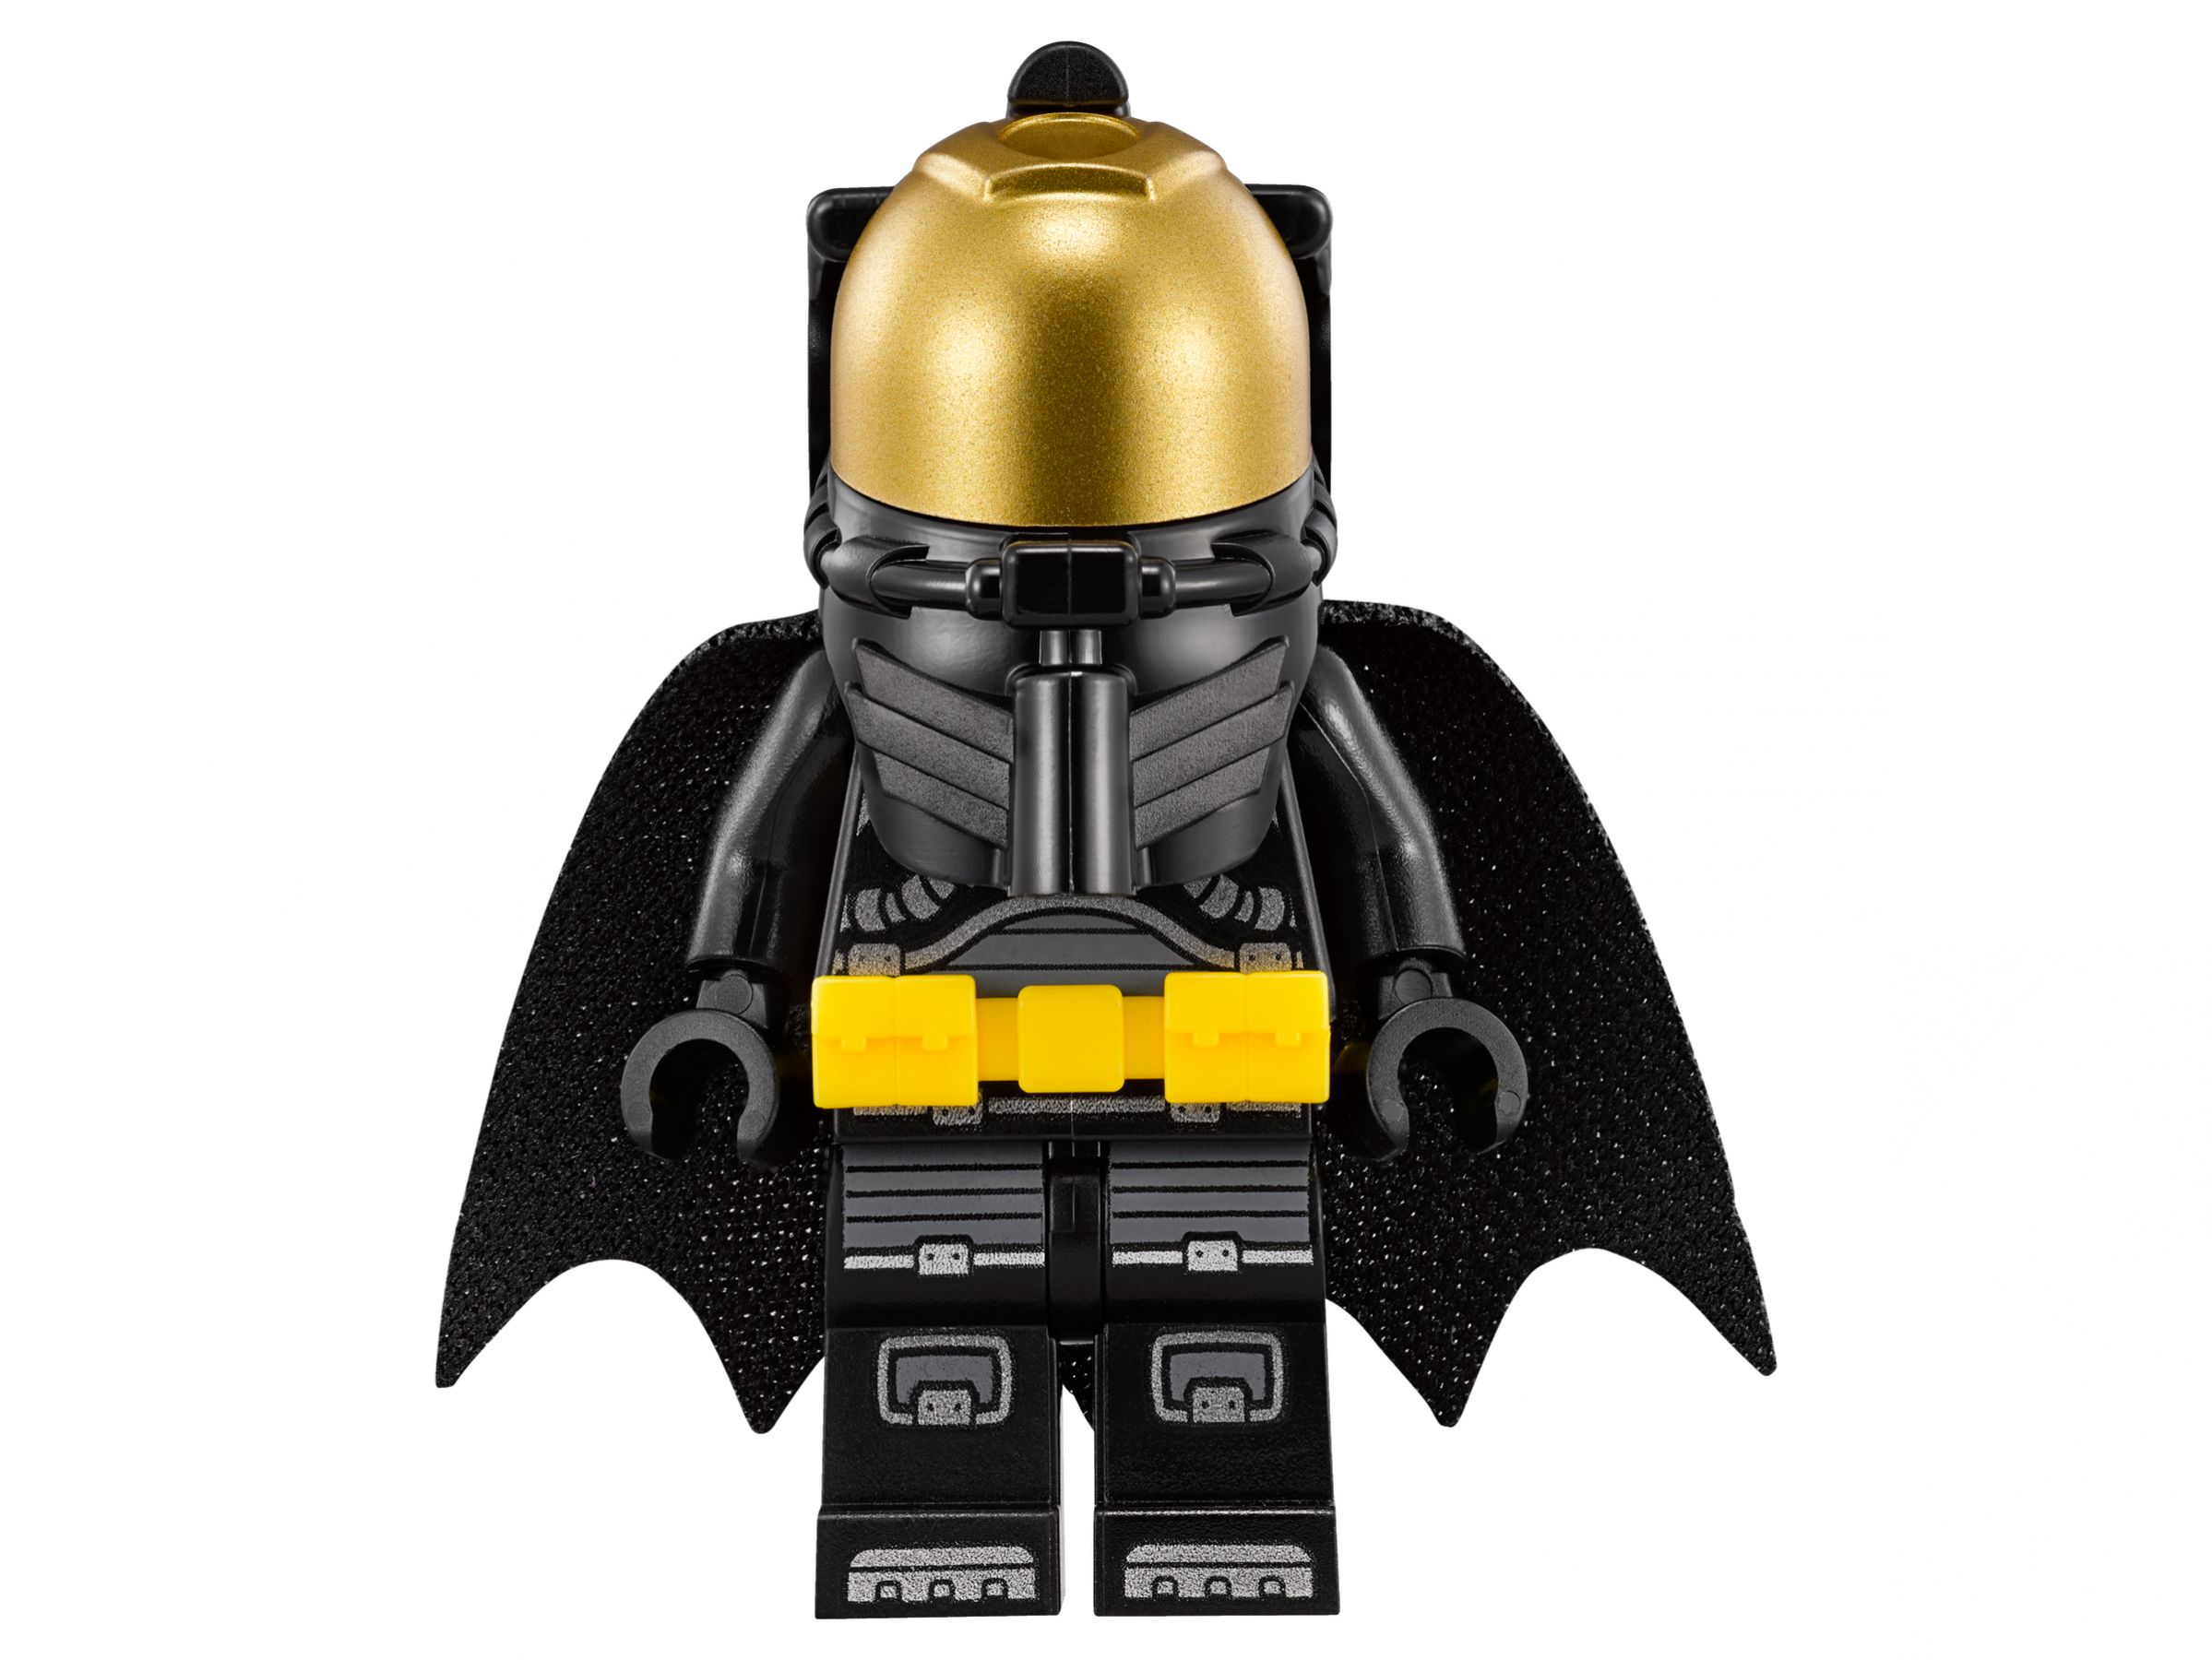 LEGO The LEGO Batman Movie 70923 Batman Spaceshuttle LEGO_70923_alt9.jpg